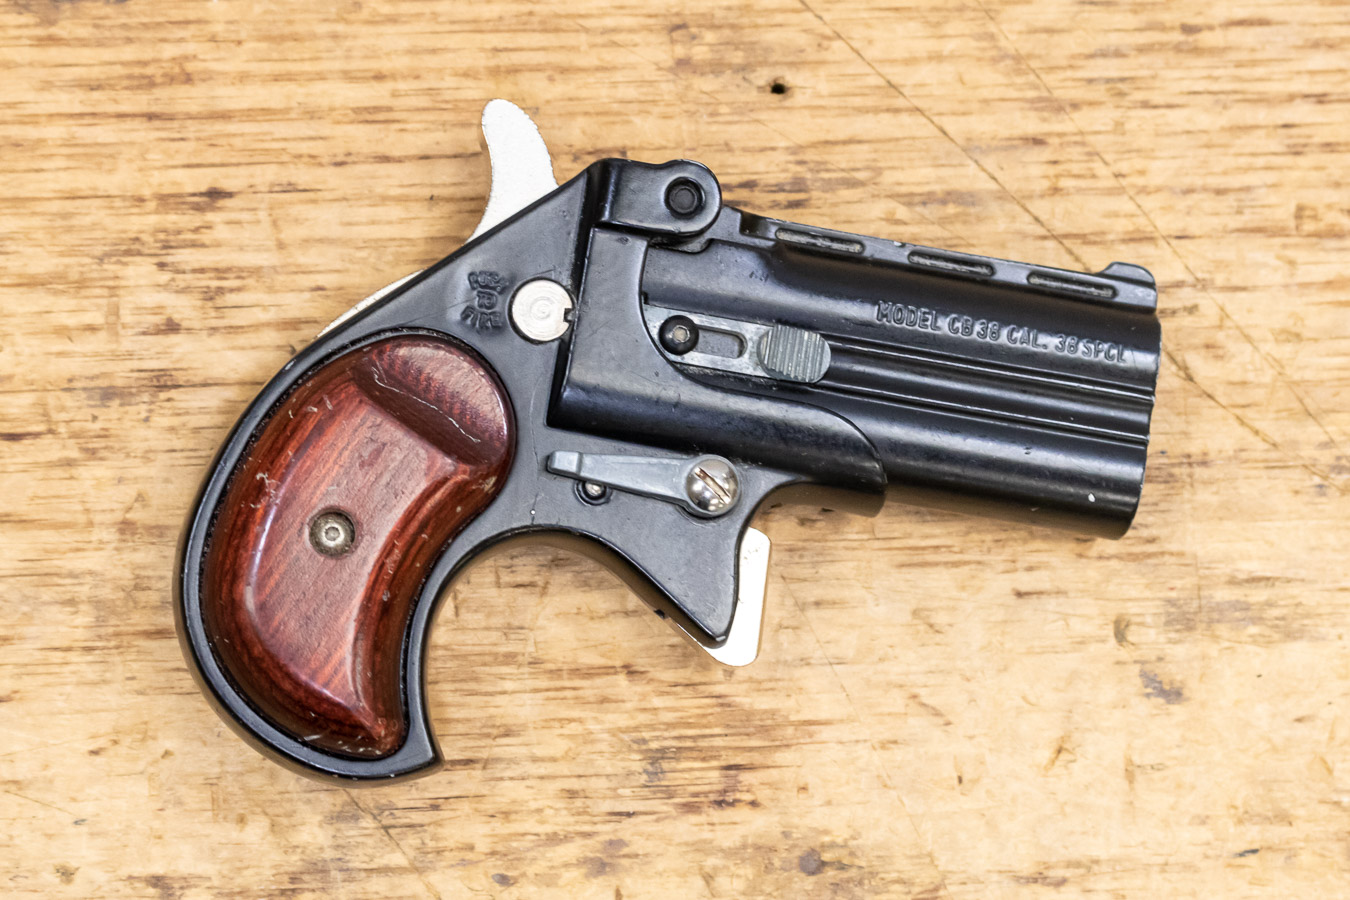 CB38 38 Special Used Trade-in Derringer with Black Frame and Wood Grips